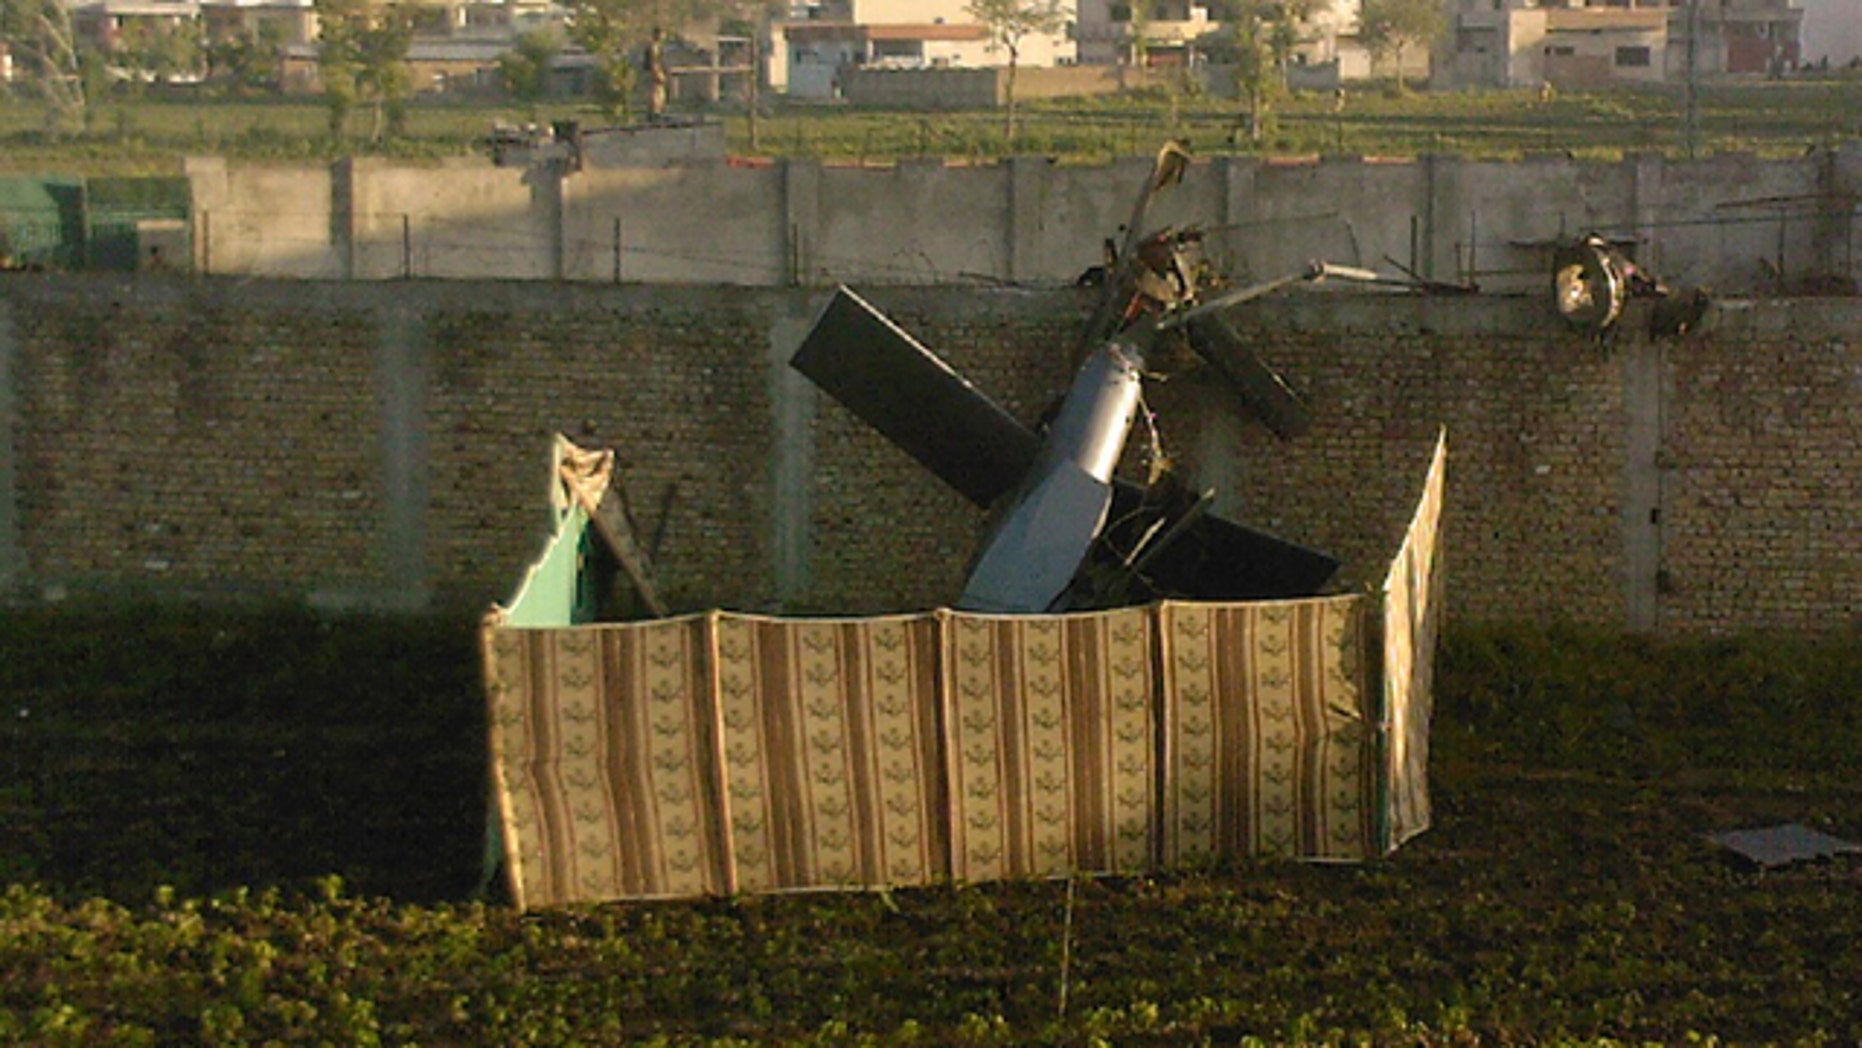 May 2: A photo taken by a local resident shows the wreckage of a helicopter next to the wall of the compound where, according to officials, Osama bin Laden was shot and killed in a firefight with U.S. forces in Abbottabad, Pakistan. Bin Laden, the glowering mastermind behind the Sept. 11, 2001, terror attacks that killed thousands of Americans, was slain in his luxury hideout in Pakistan early Monday. (AP/Mohammad Zubair)